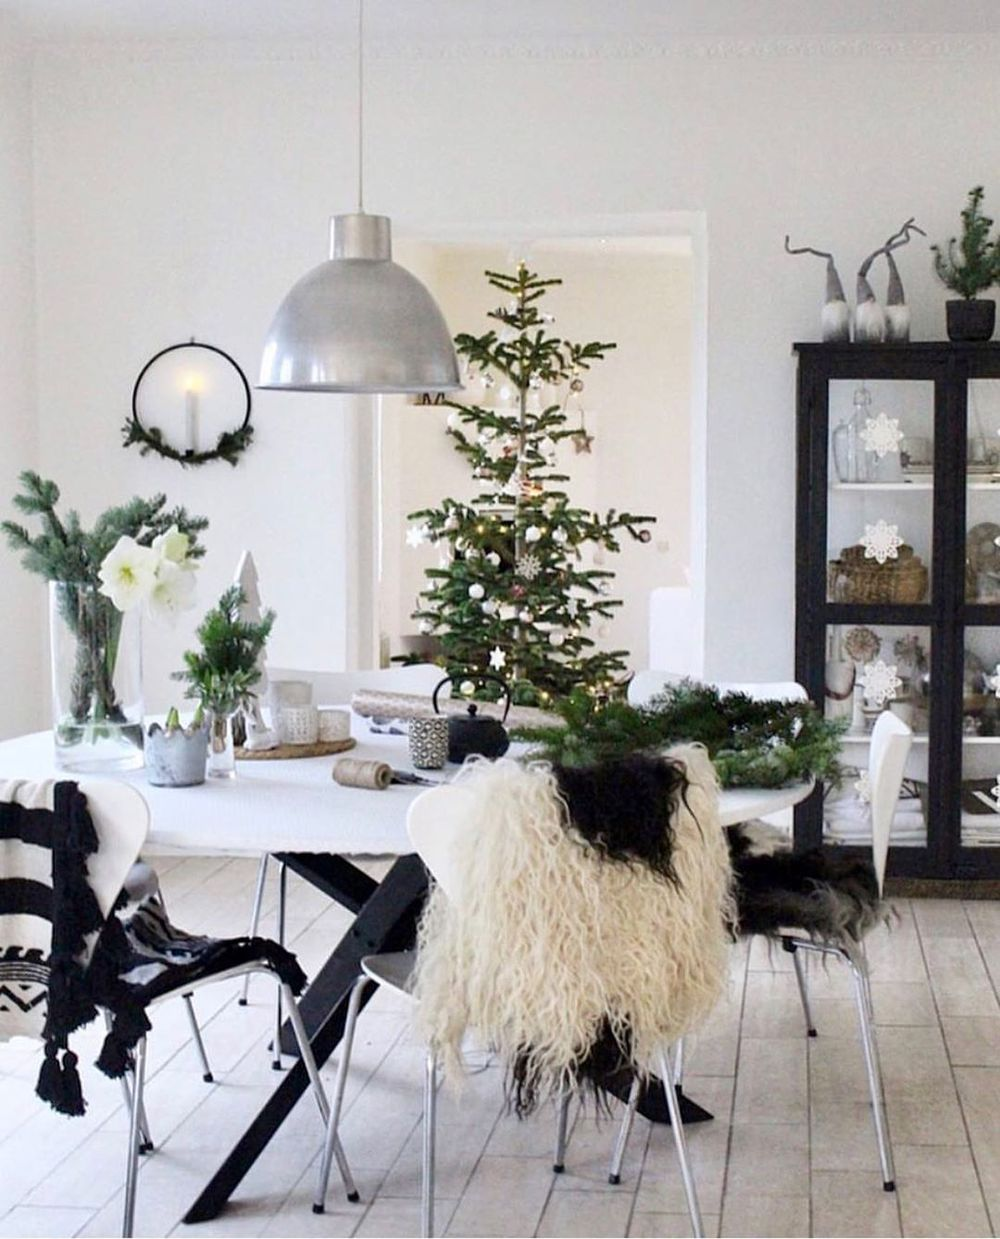 Scandi Christmas dining room with lots of Evergreen via @skovbon